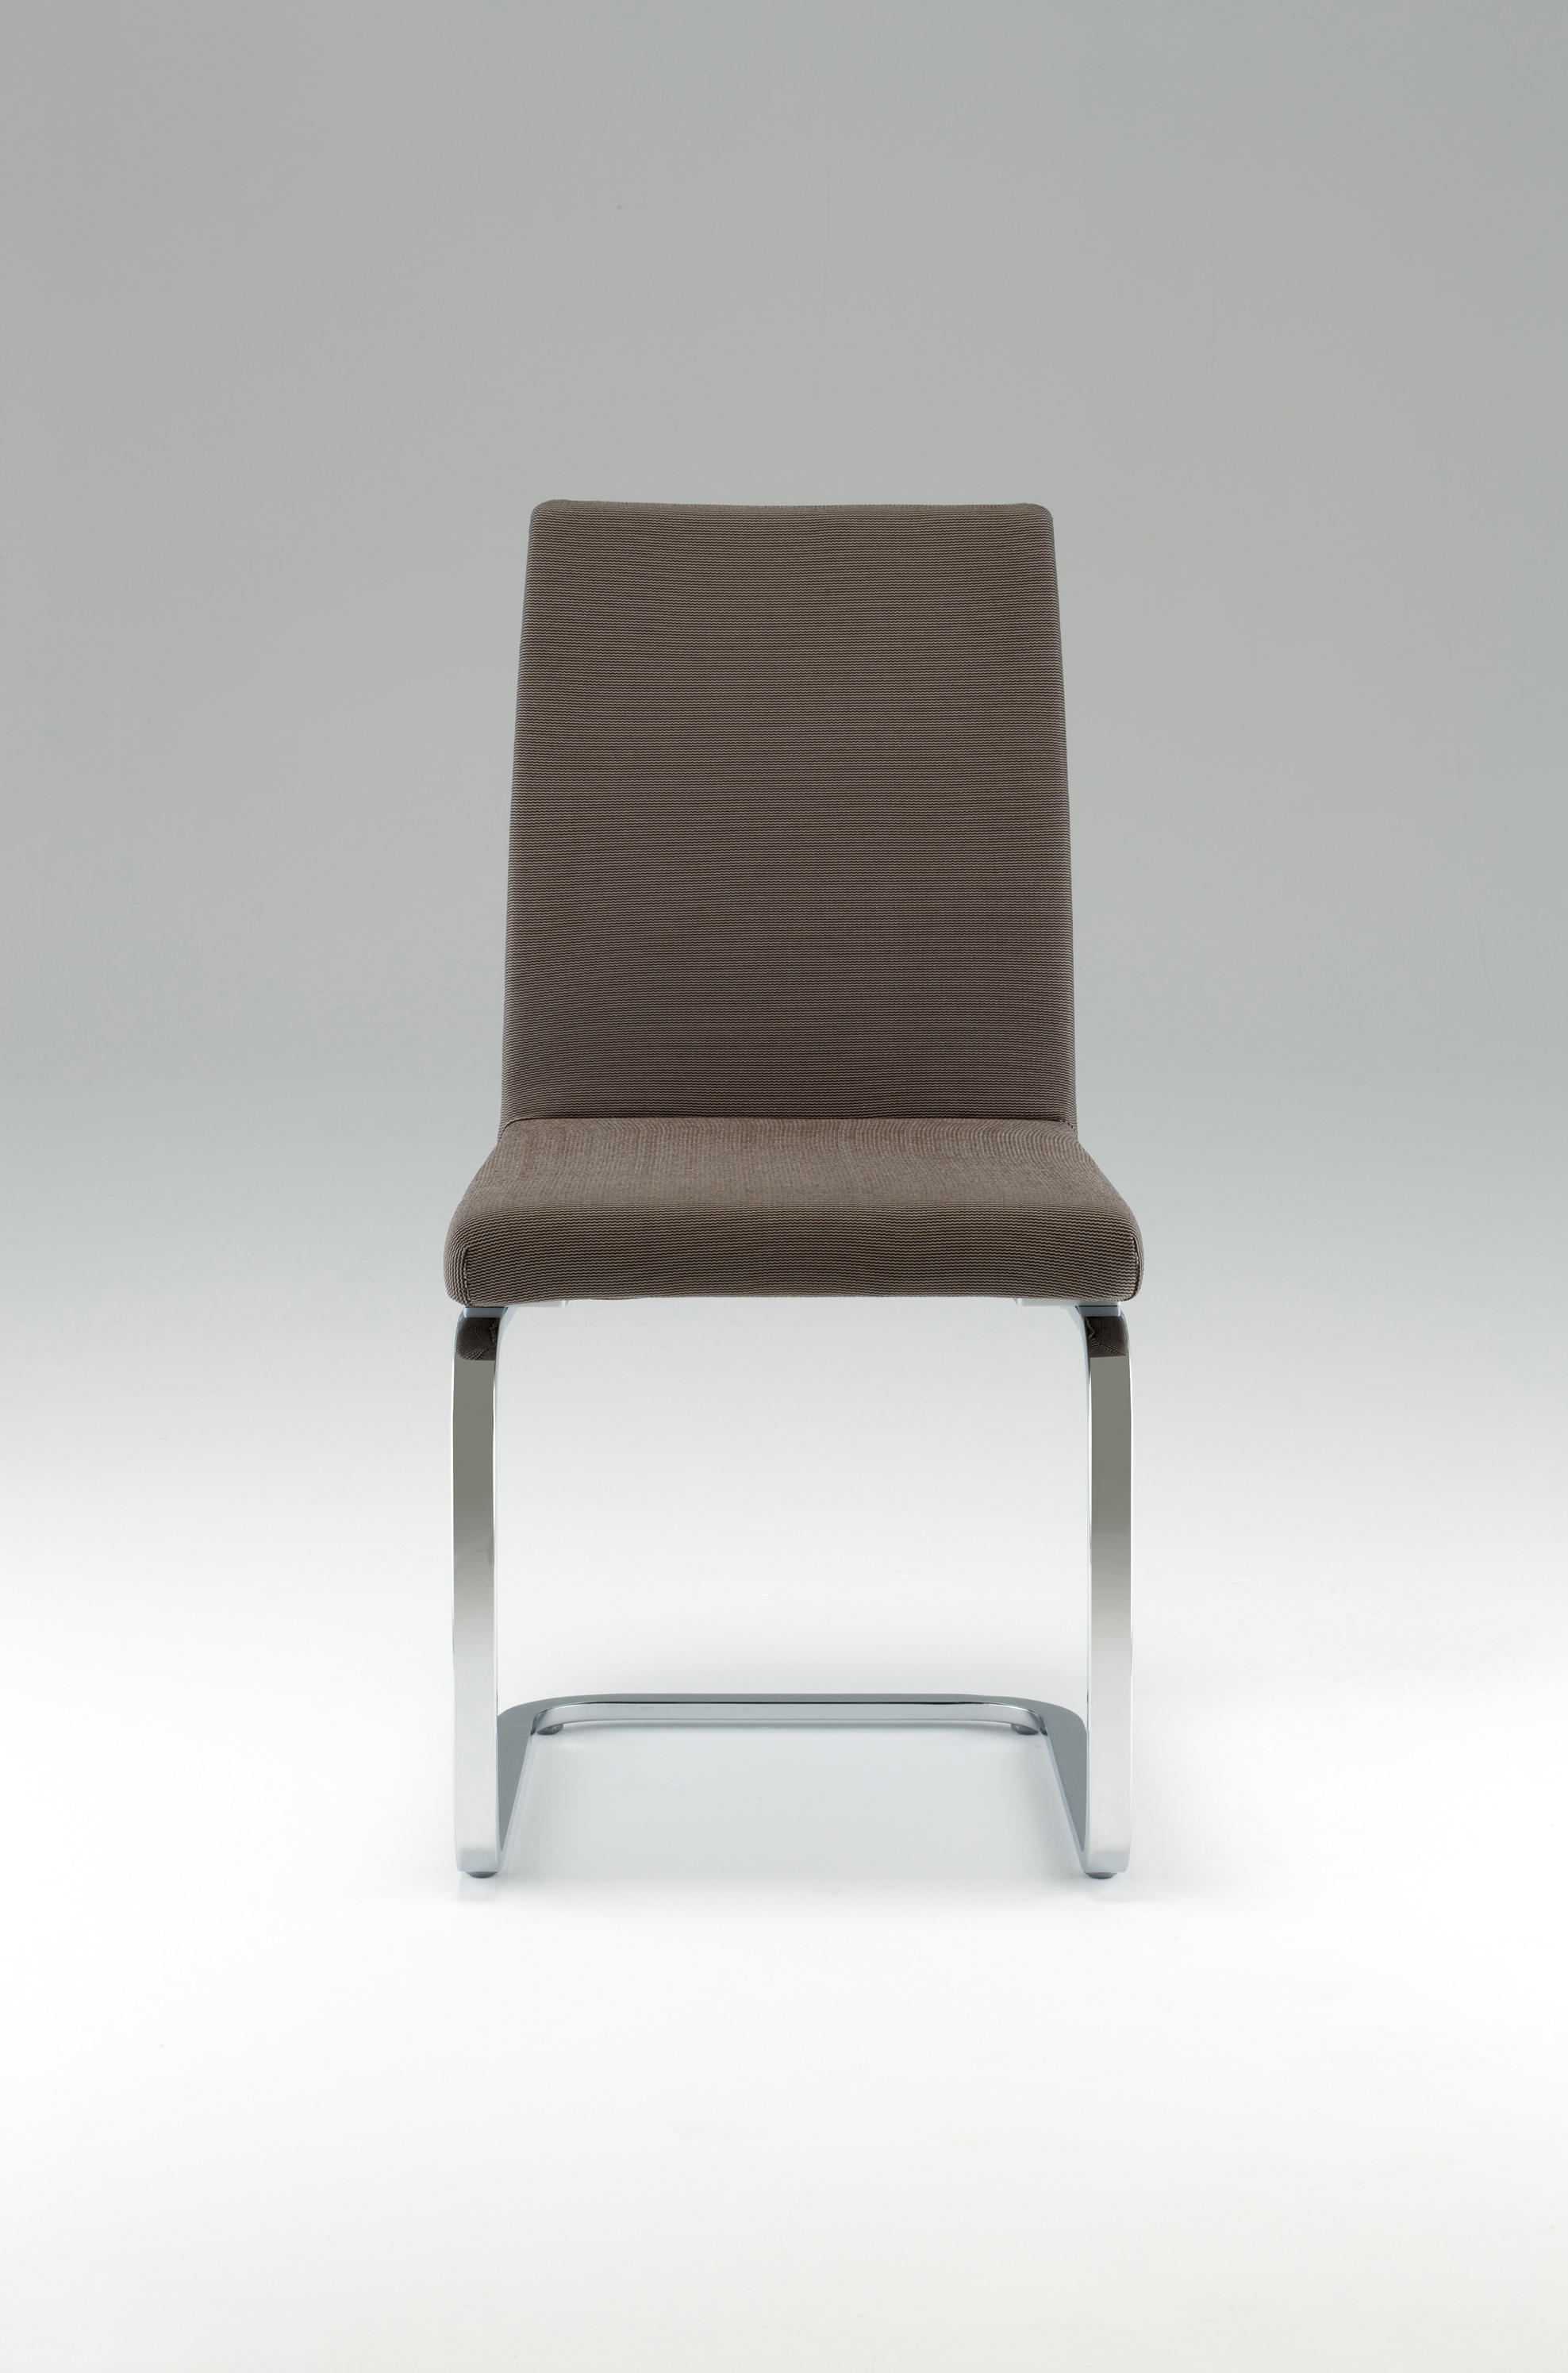 Rolf Benz Eetbank.Rolf Benz 620 Chairs From Rolf Benz Architonic